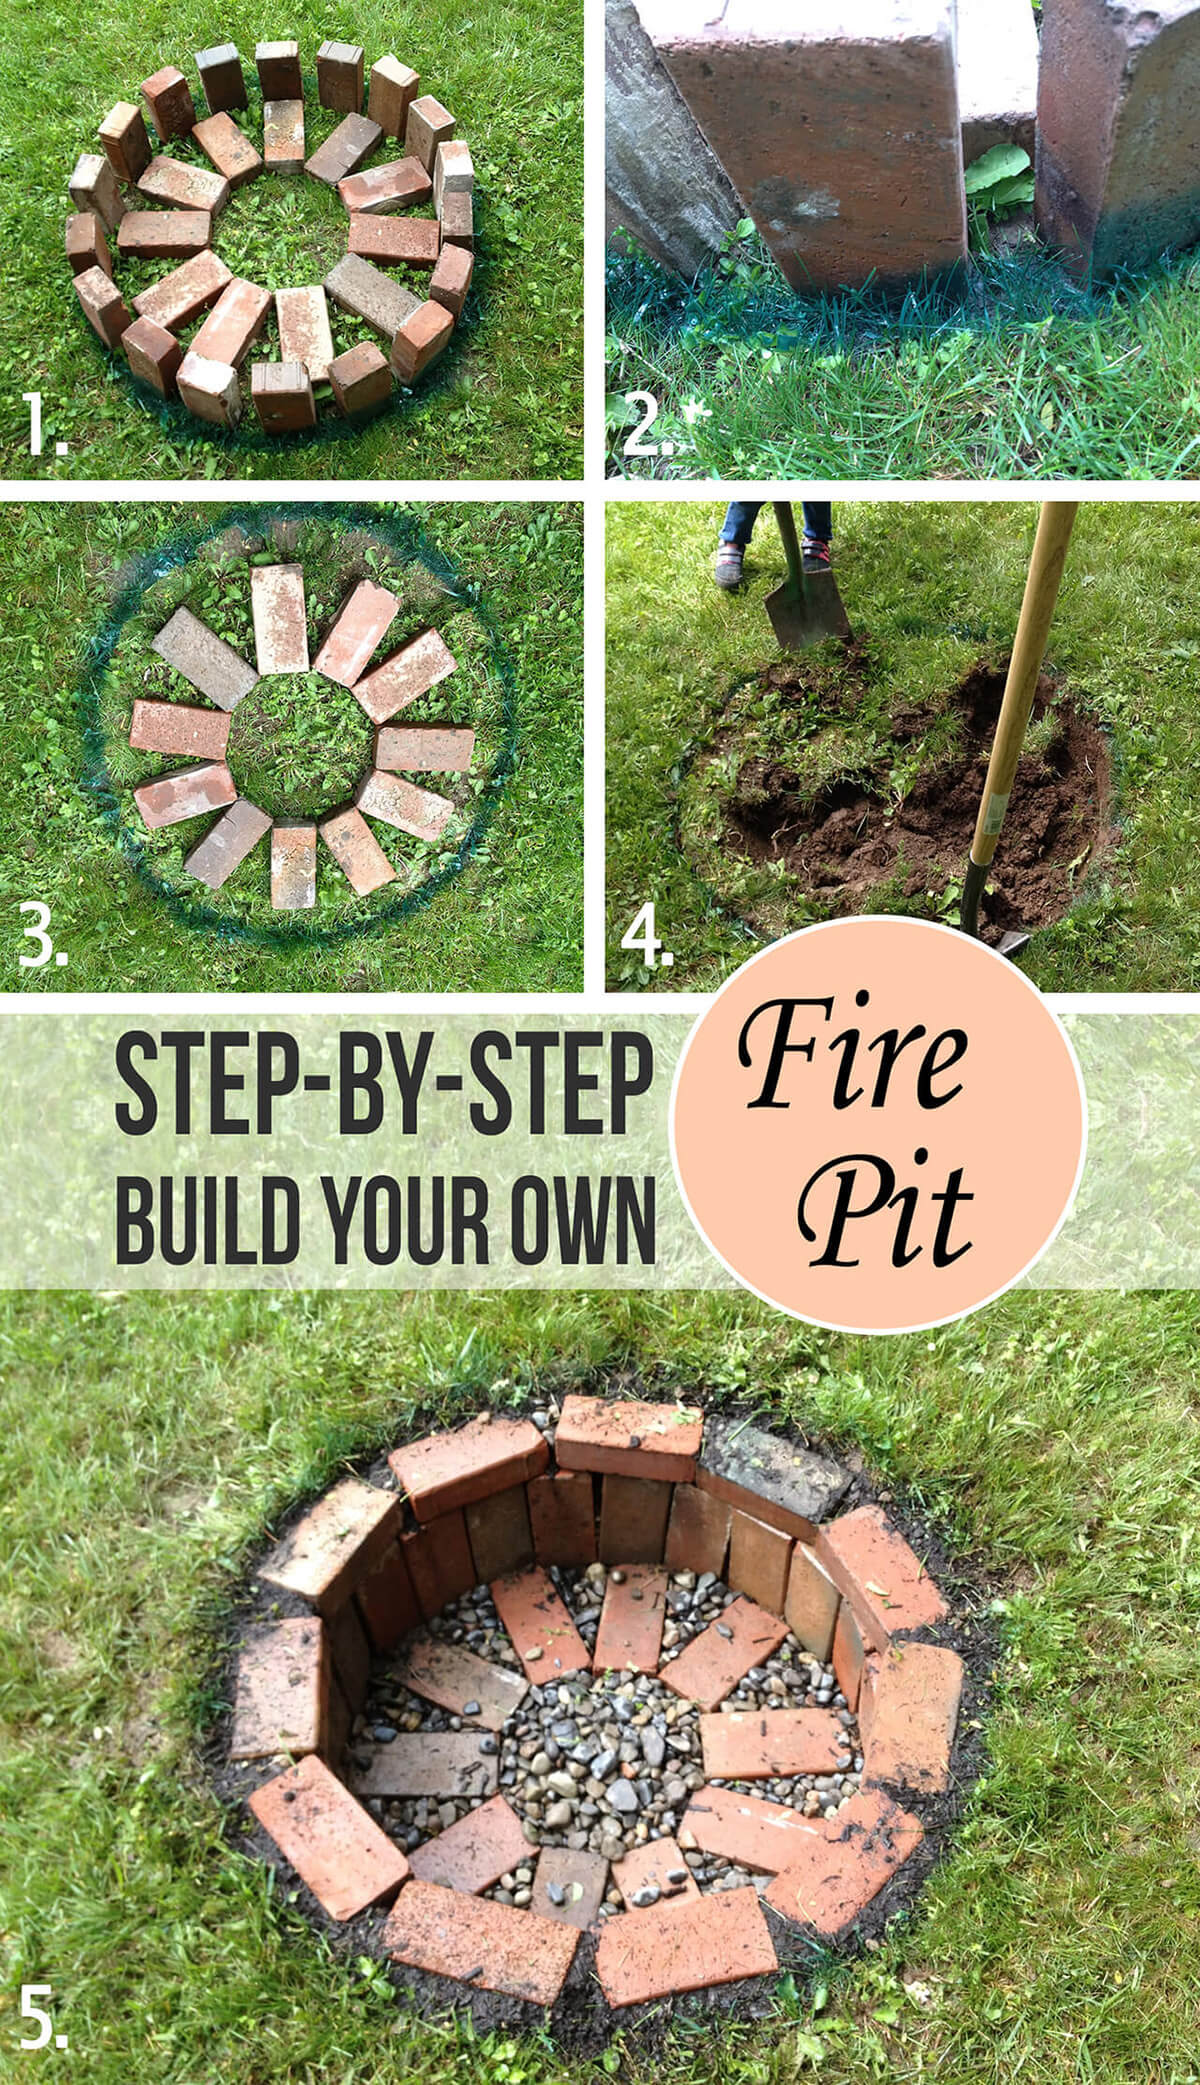 Easy In-Ground DIY Brick Fire Pit